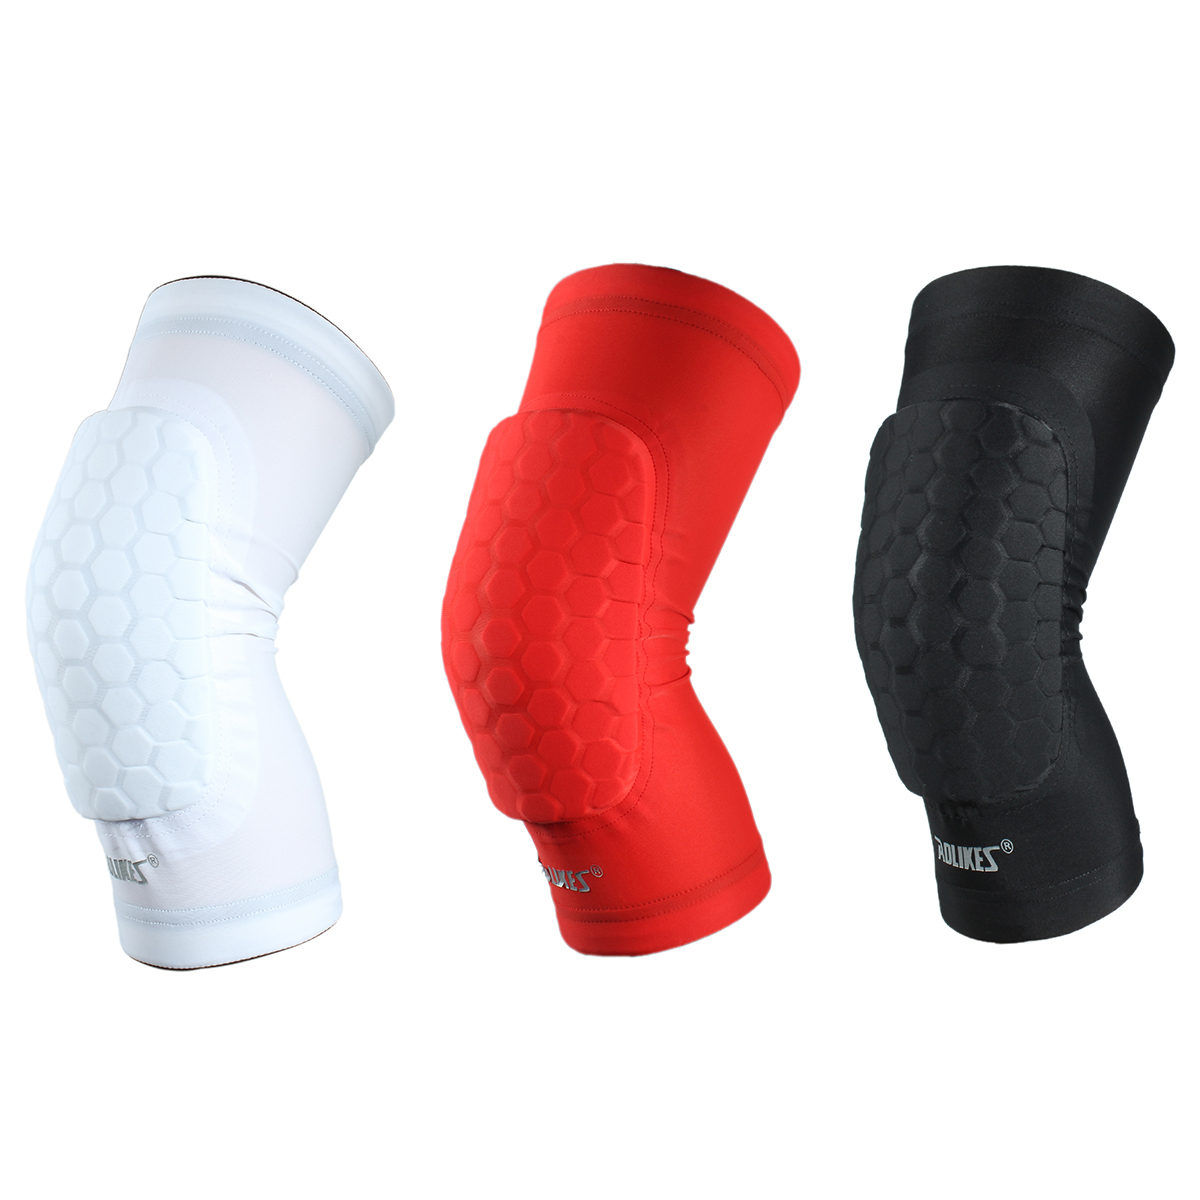 AOLIKES Hex Sponge Protective Knee Pads Basketball Leg Sleeves Compression Knee Braces Knee Pads